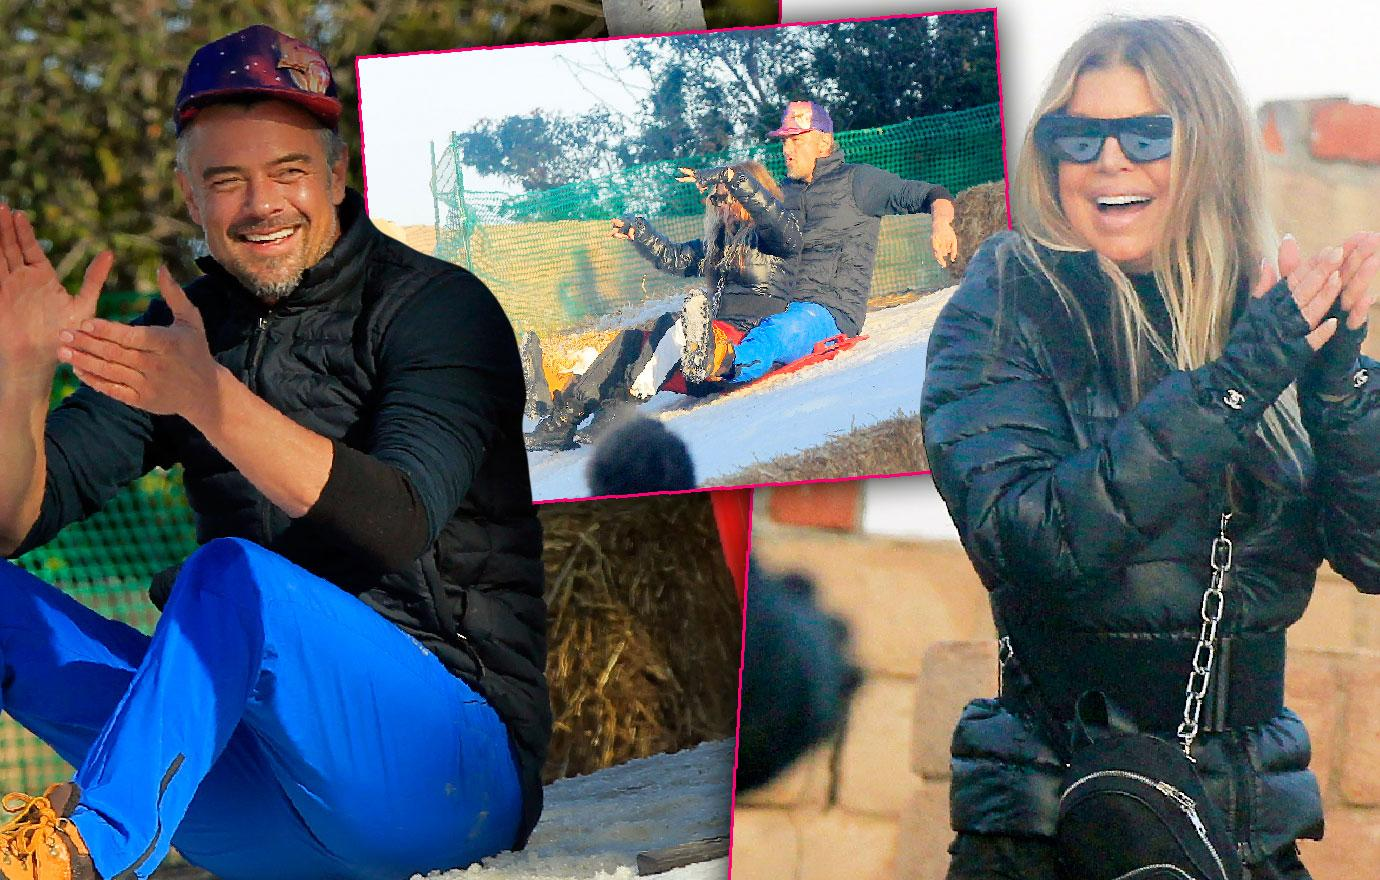 Fergie Ex-Husband Josh Duhamel Bond At Snow Party